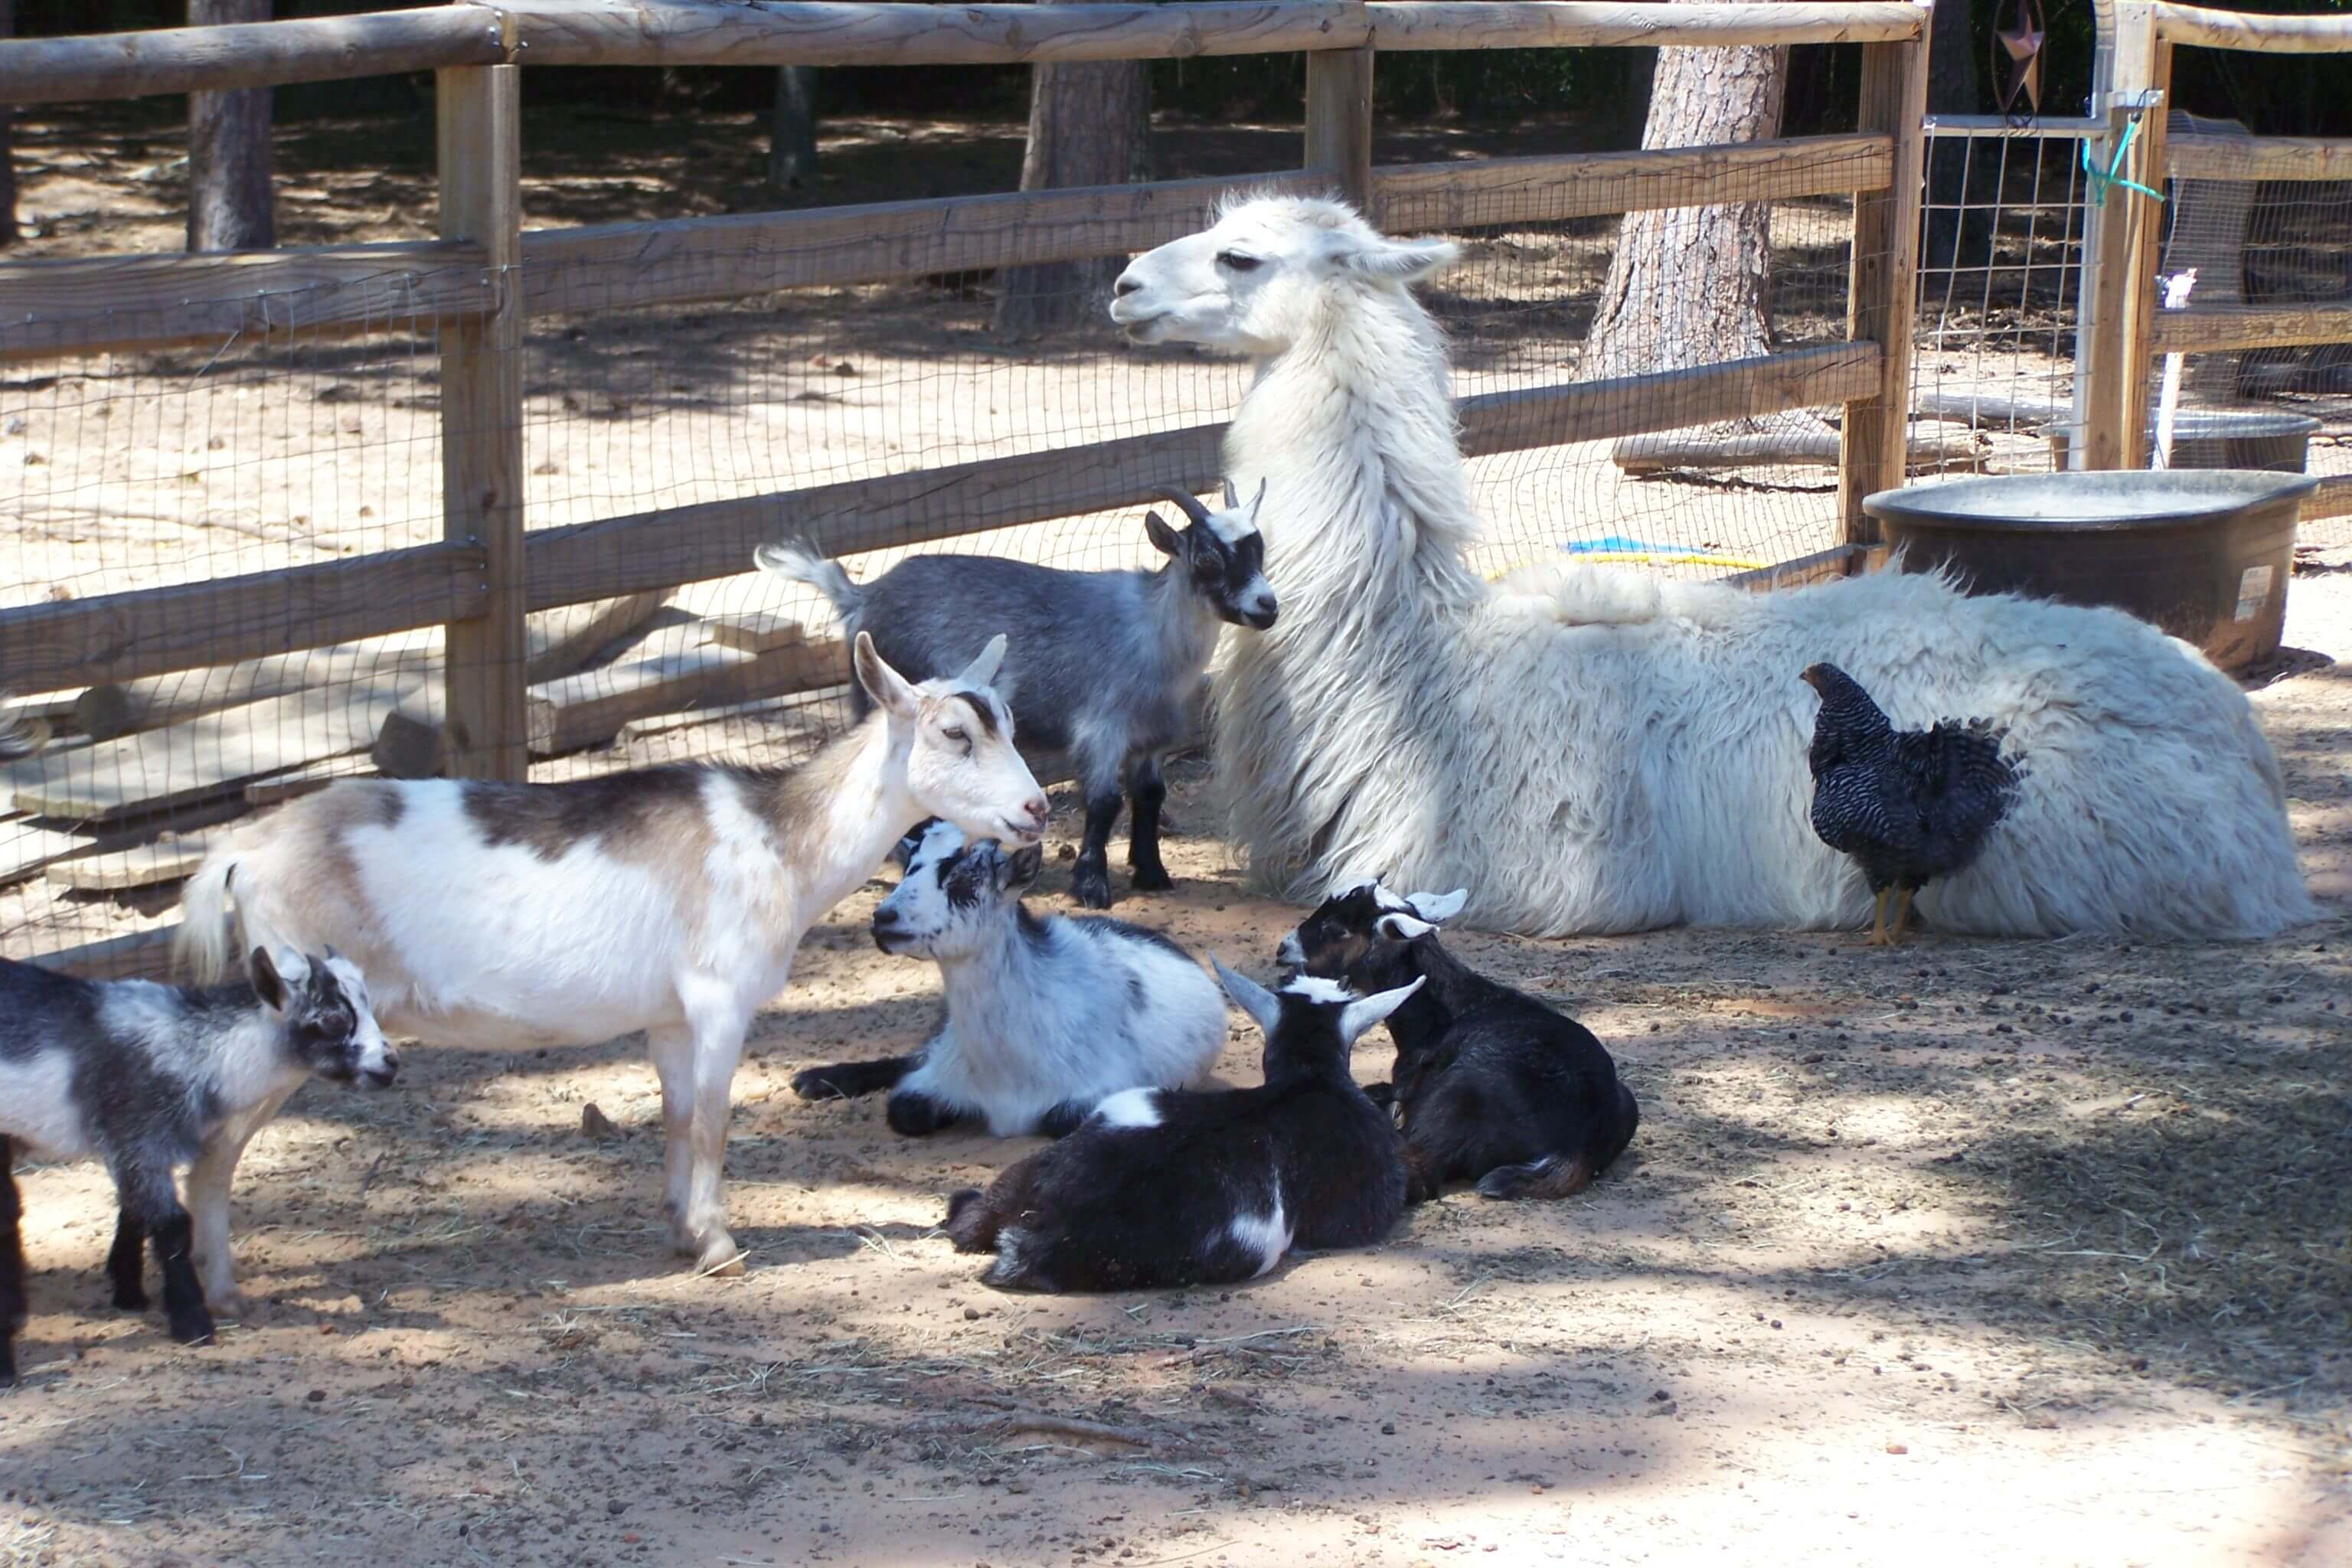 A petting zoo is a fun afternoon with the kids